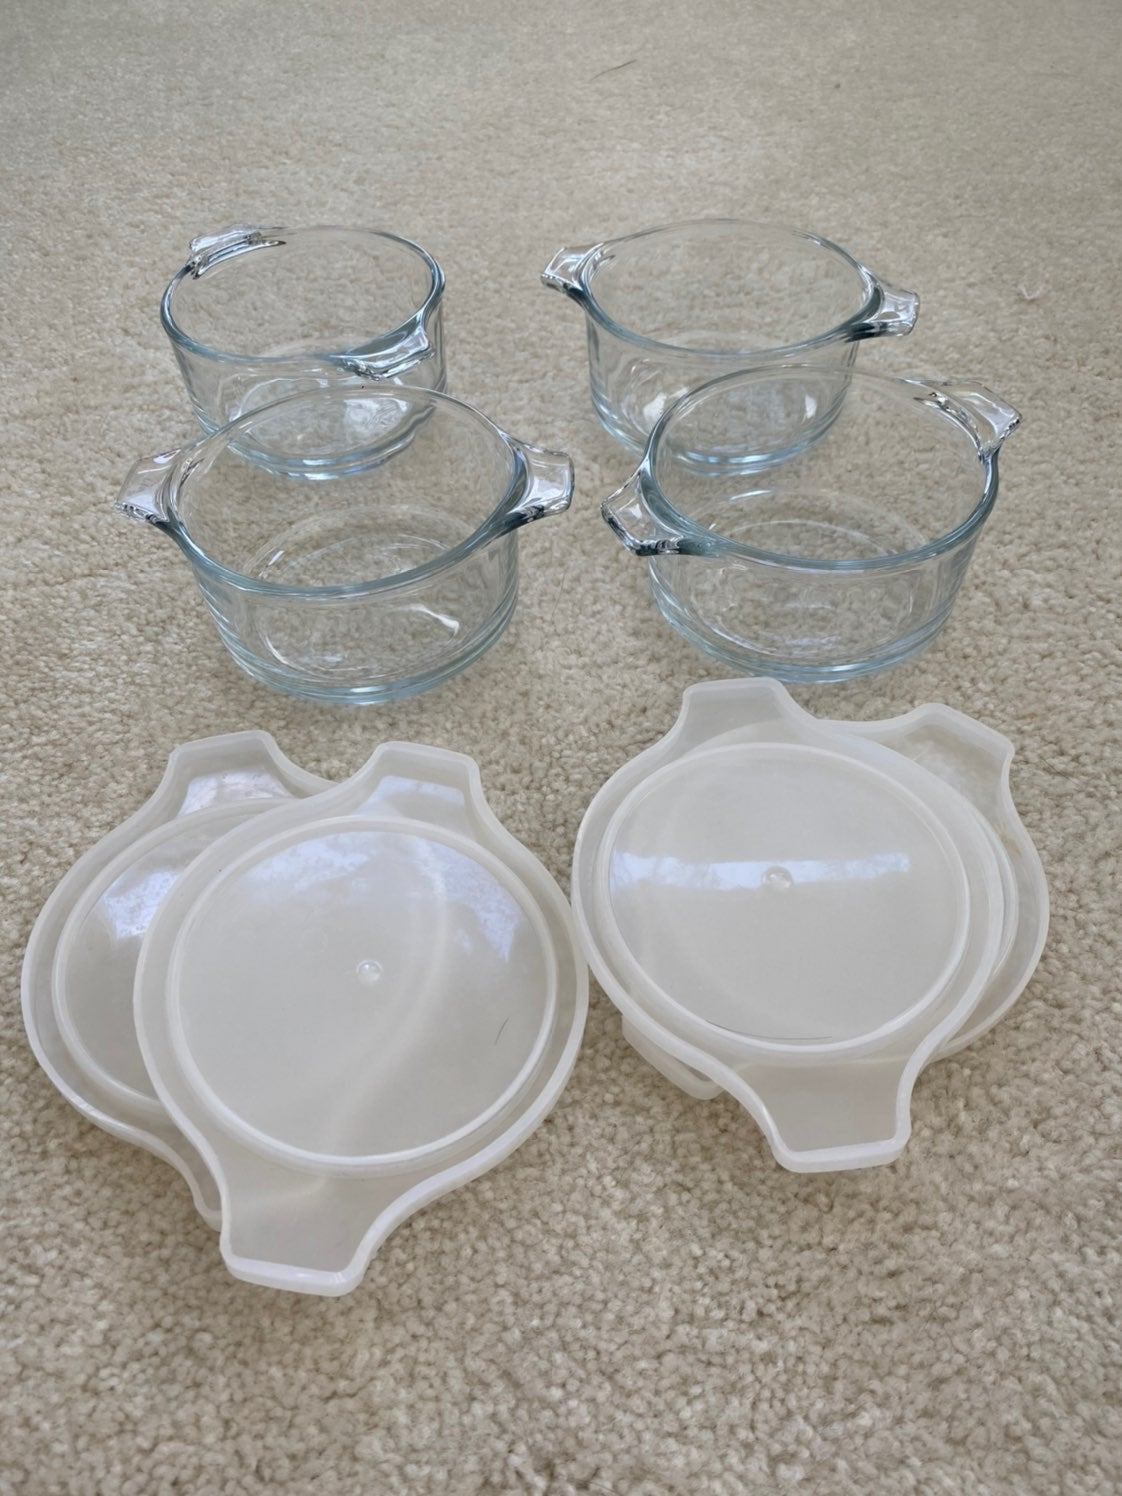 Set of 4 Glass Dishes with Lids